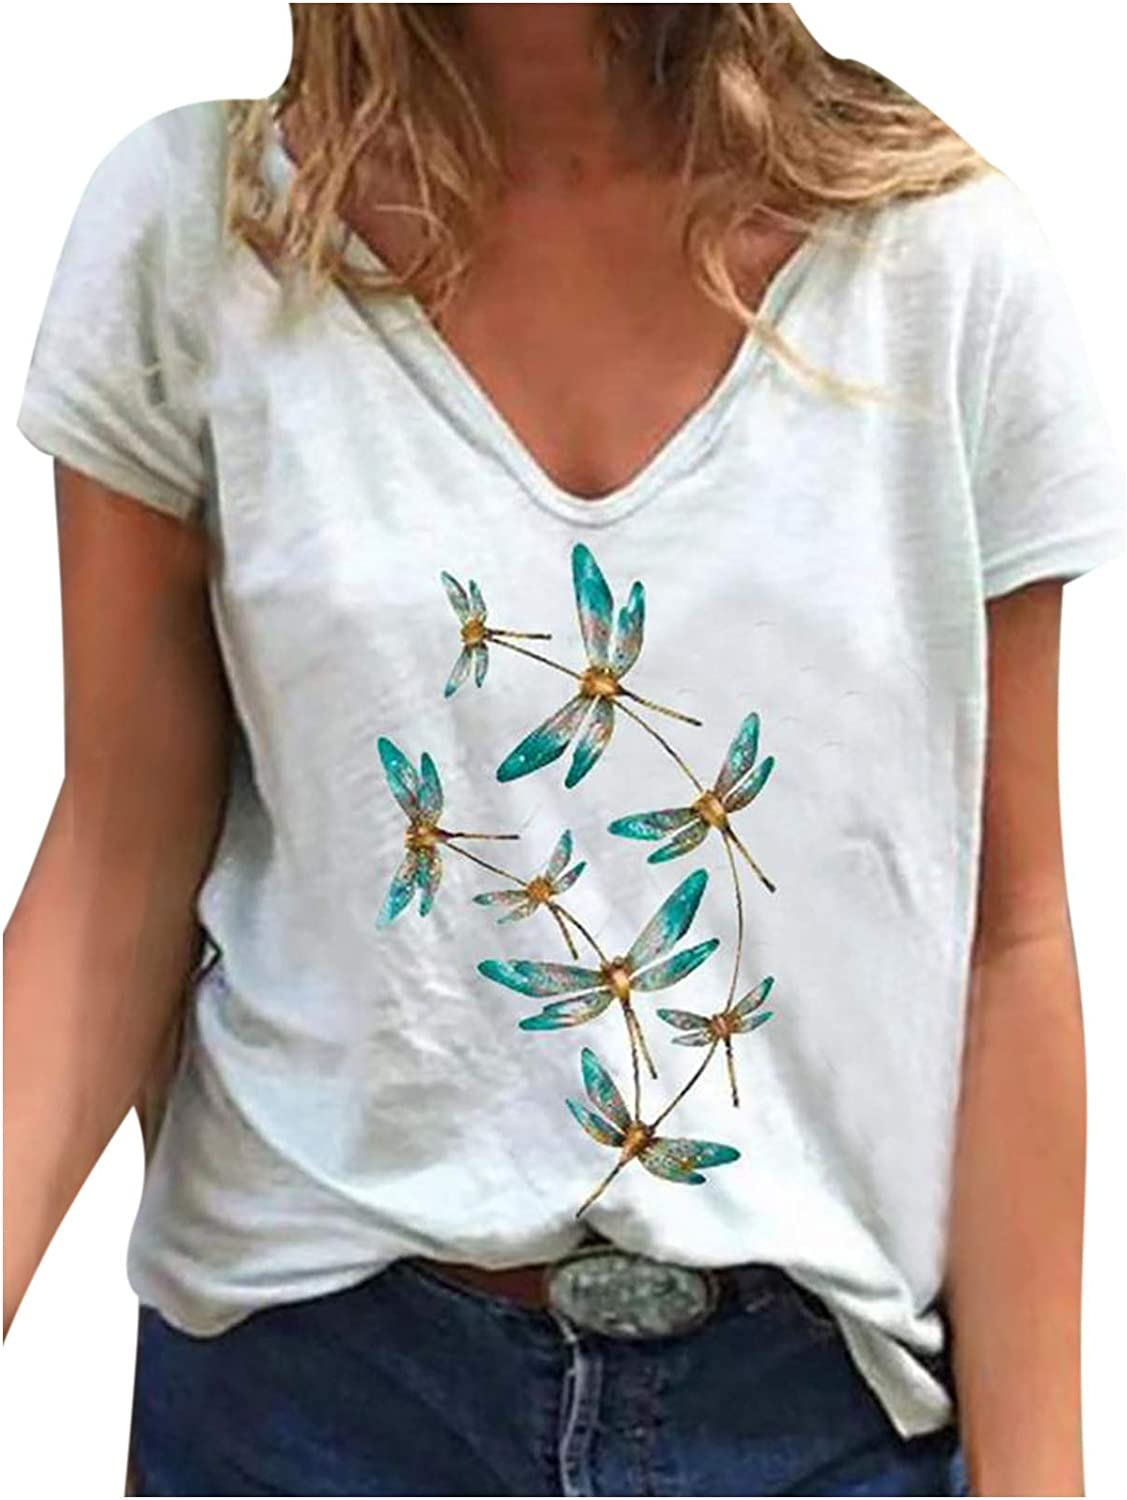 Graphic T Shirts for Women Summer Dragonfly Print Loose Casual Tee Shirts Cute Soft Loose V Neck Tops Valentine Gift Tops